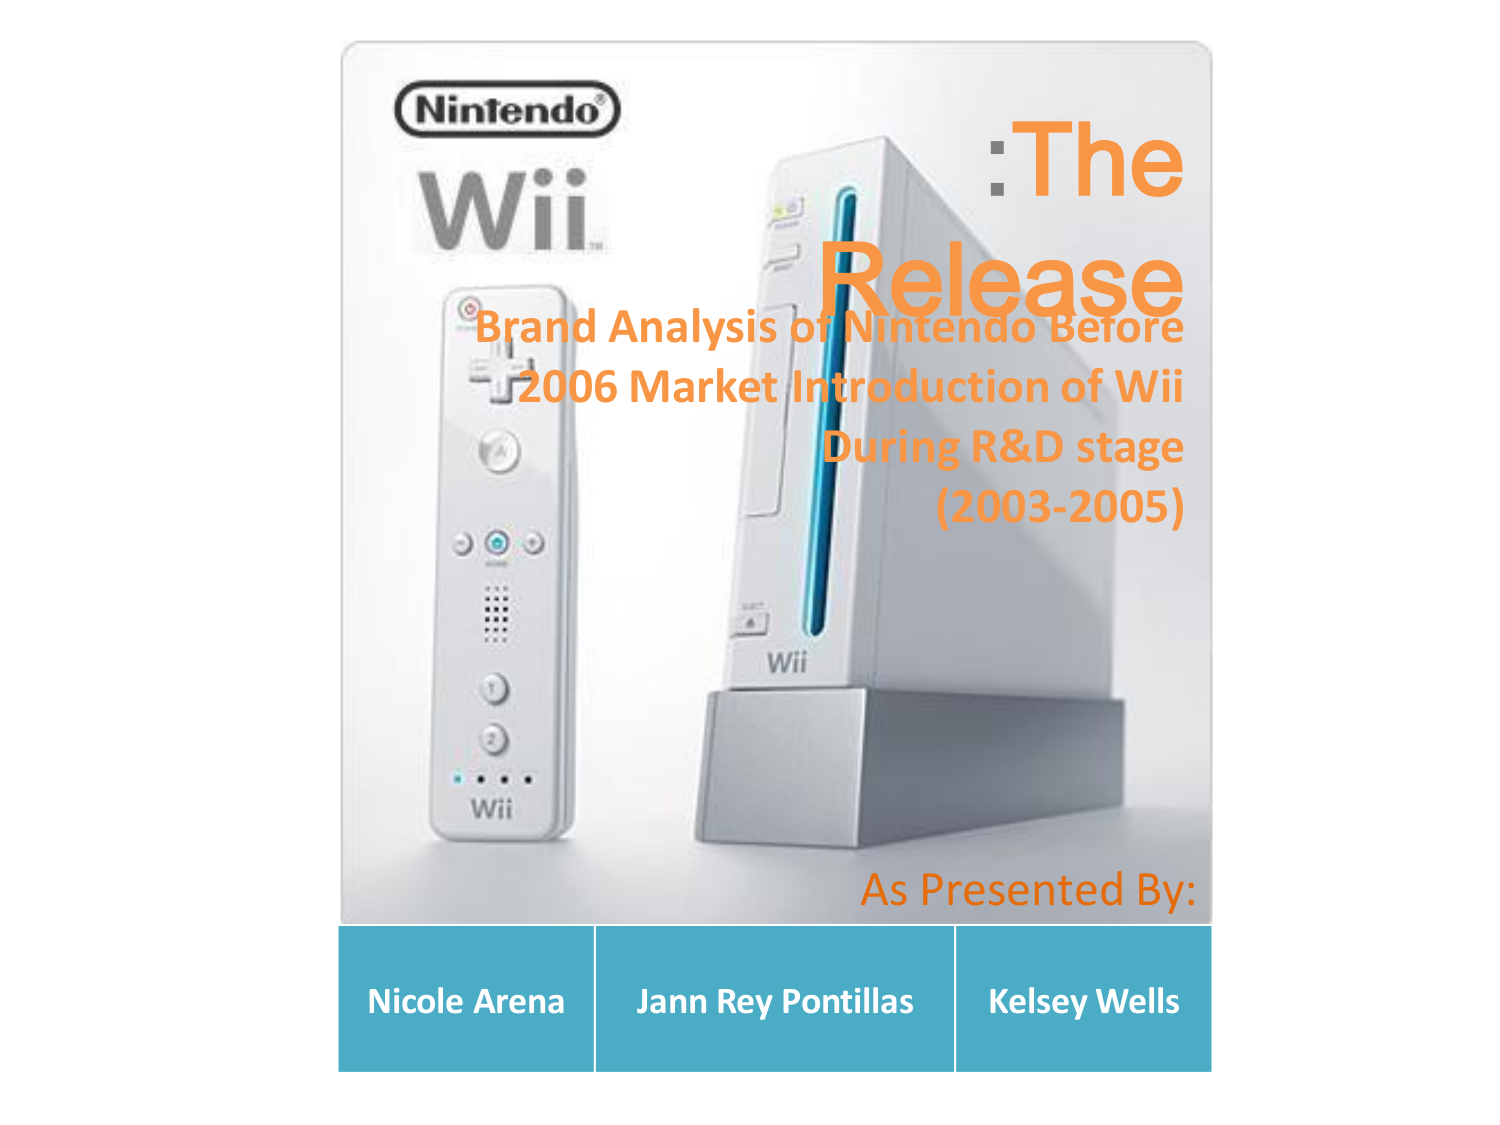 marketing analysis for nintendo wii Nintendo wii case analysis the wii is a video game console released by nintendo on 2006 audit report: marketing plan and situation analysis for nintendo wii wii's macroenvironment the nintendo wii's macroenvironment consists of many components that the company has been able to.